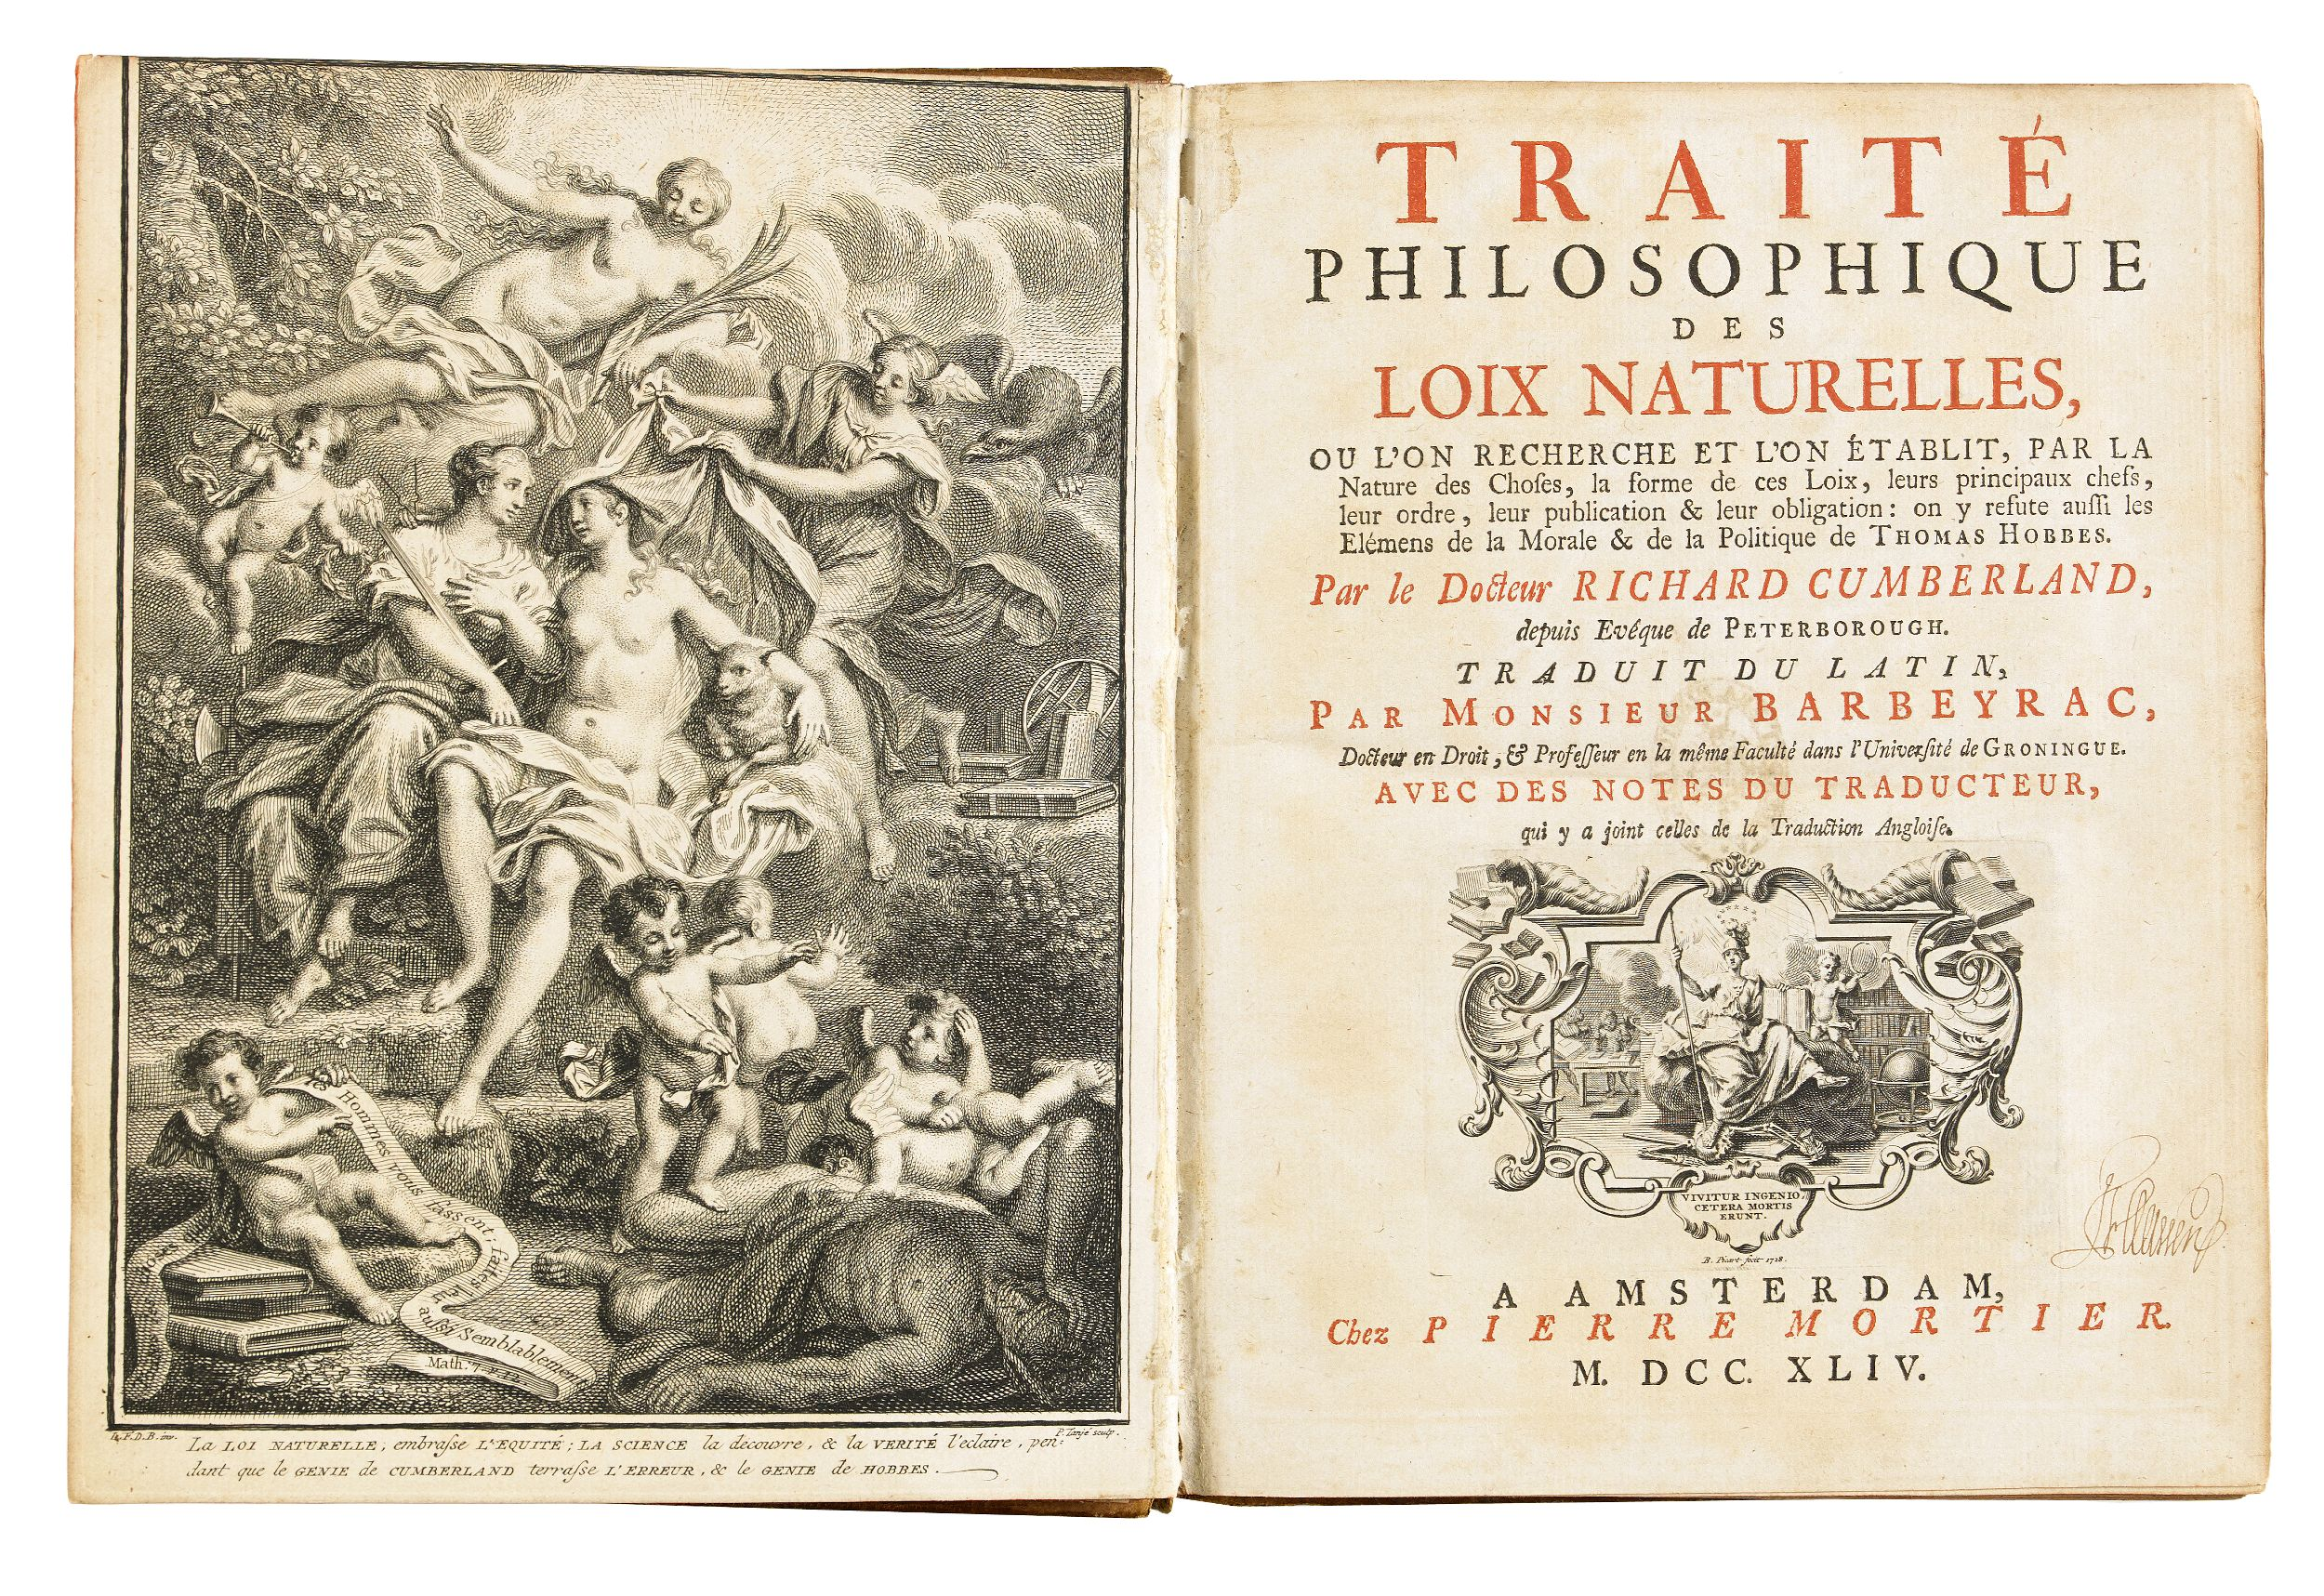 """Philosophical tract on the """"Loix naturelle"""""""